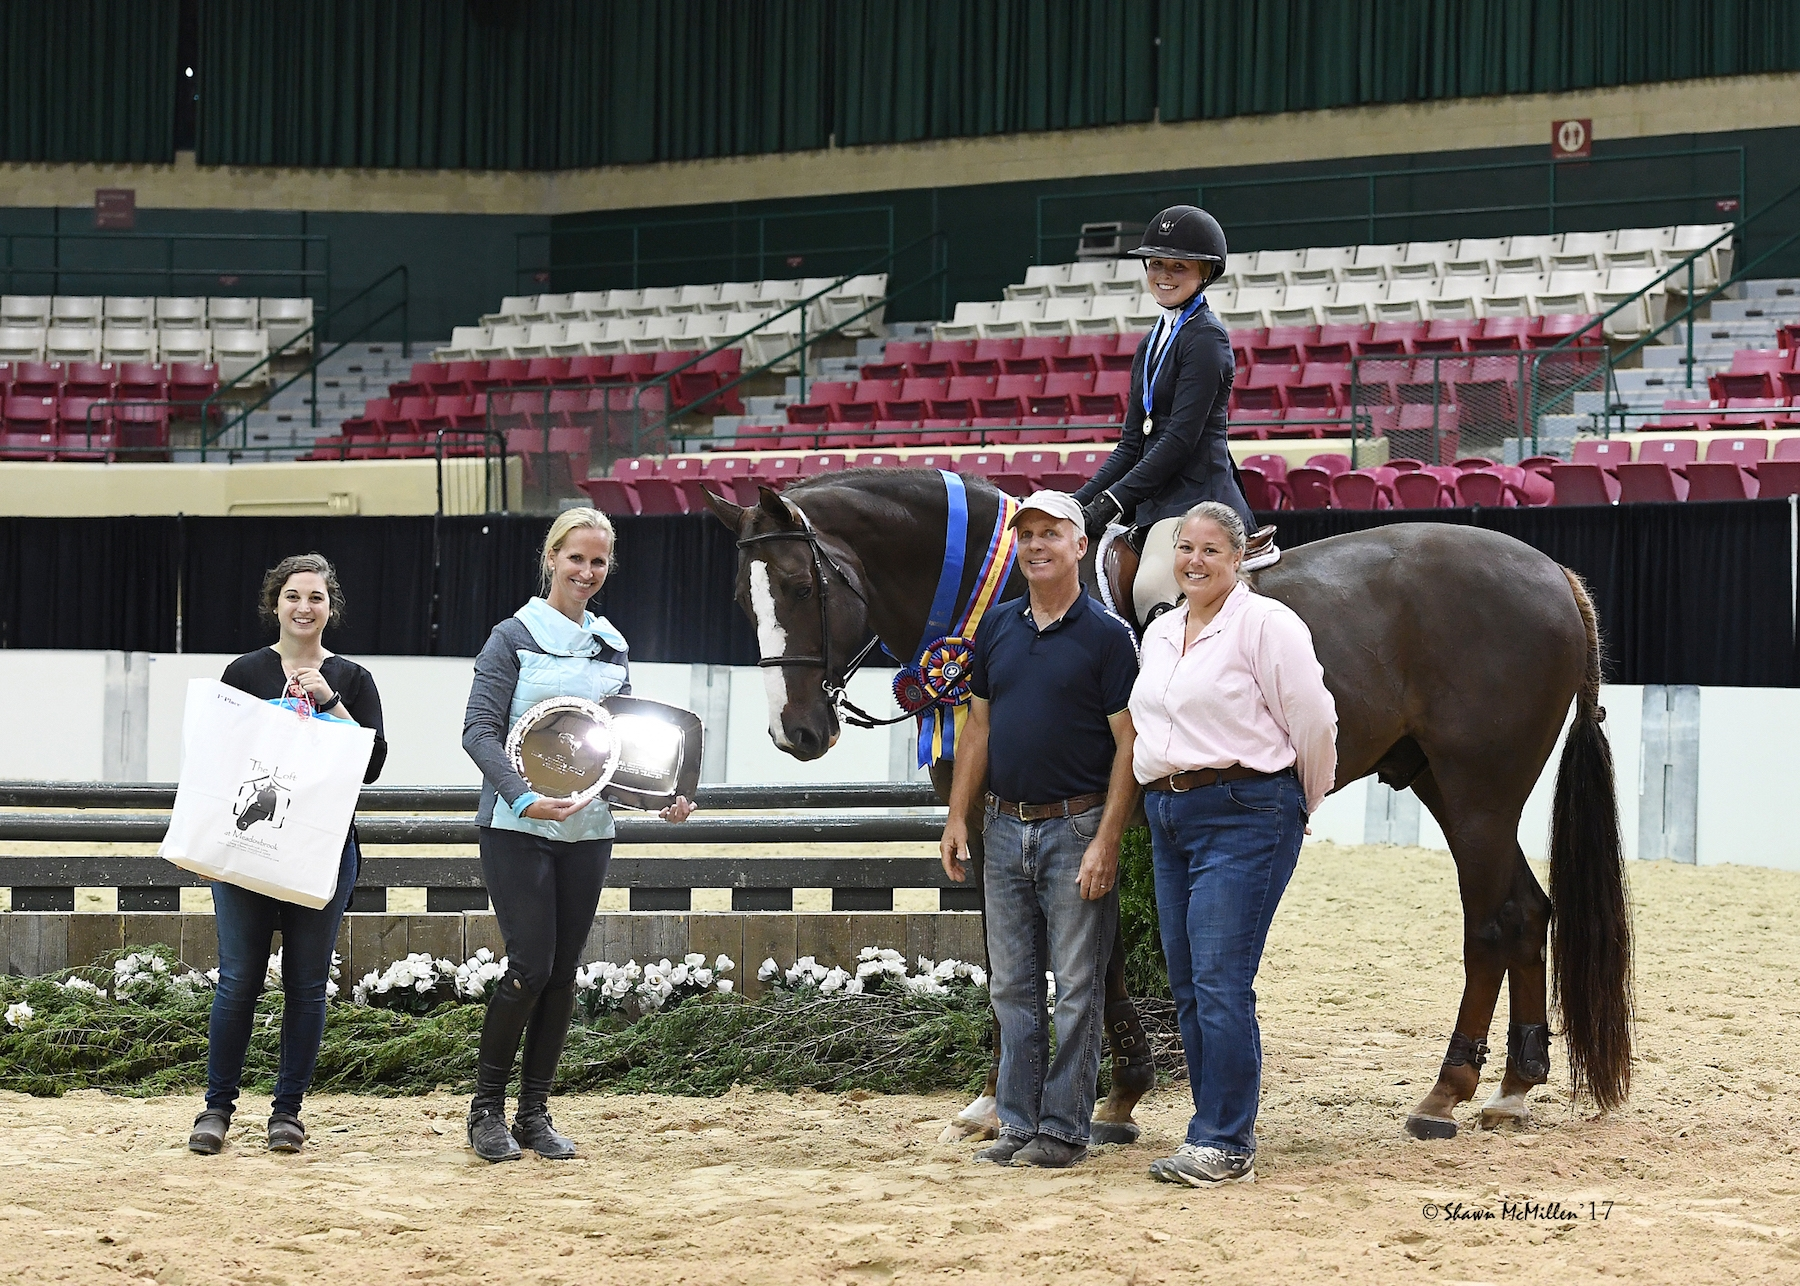 Madeline McManus, aboard Invesco, is presented as winner of the 2017 MHSA Gittings Horsemanship Finals at the 2017 WIHS Regional Horse Show and USHJA Zone 3 Championship, presented by The Linden Group at Morgan Stanley.Madeline McManus, aboard Invesco, is presented as winner of the 2017 MHSA Gittings Horsemanship Finals.<br><b>Photo by <a href='http://www.shawnmcmillen.com/' target='_blank'>Shawn McMillen Photography</a></b>